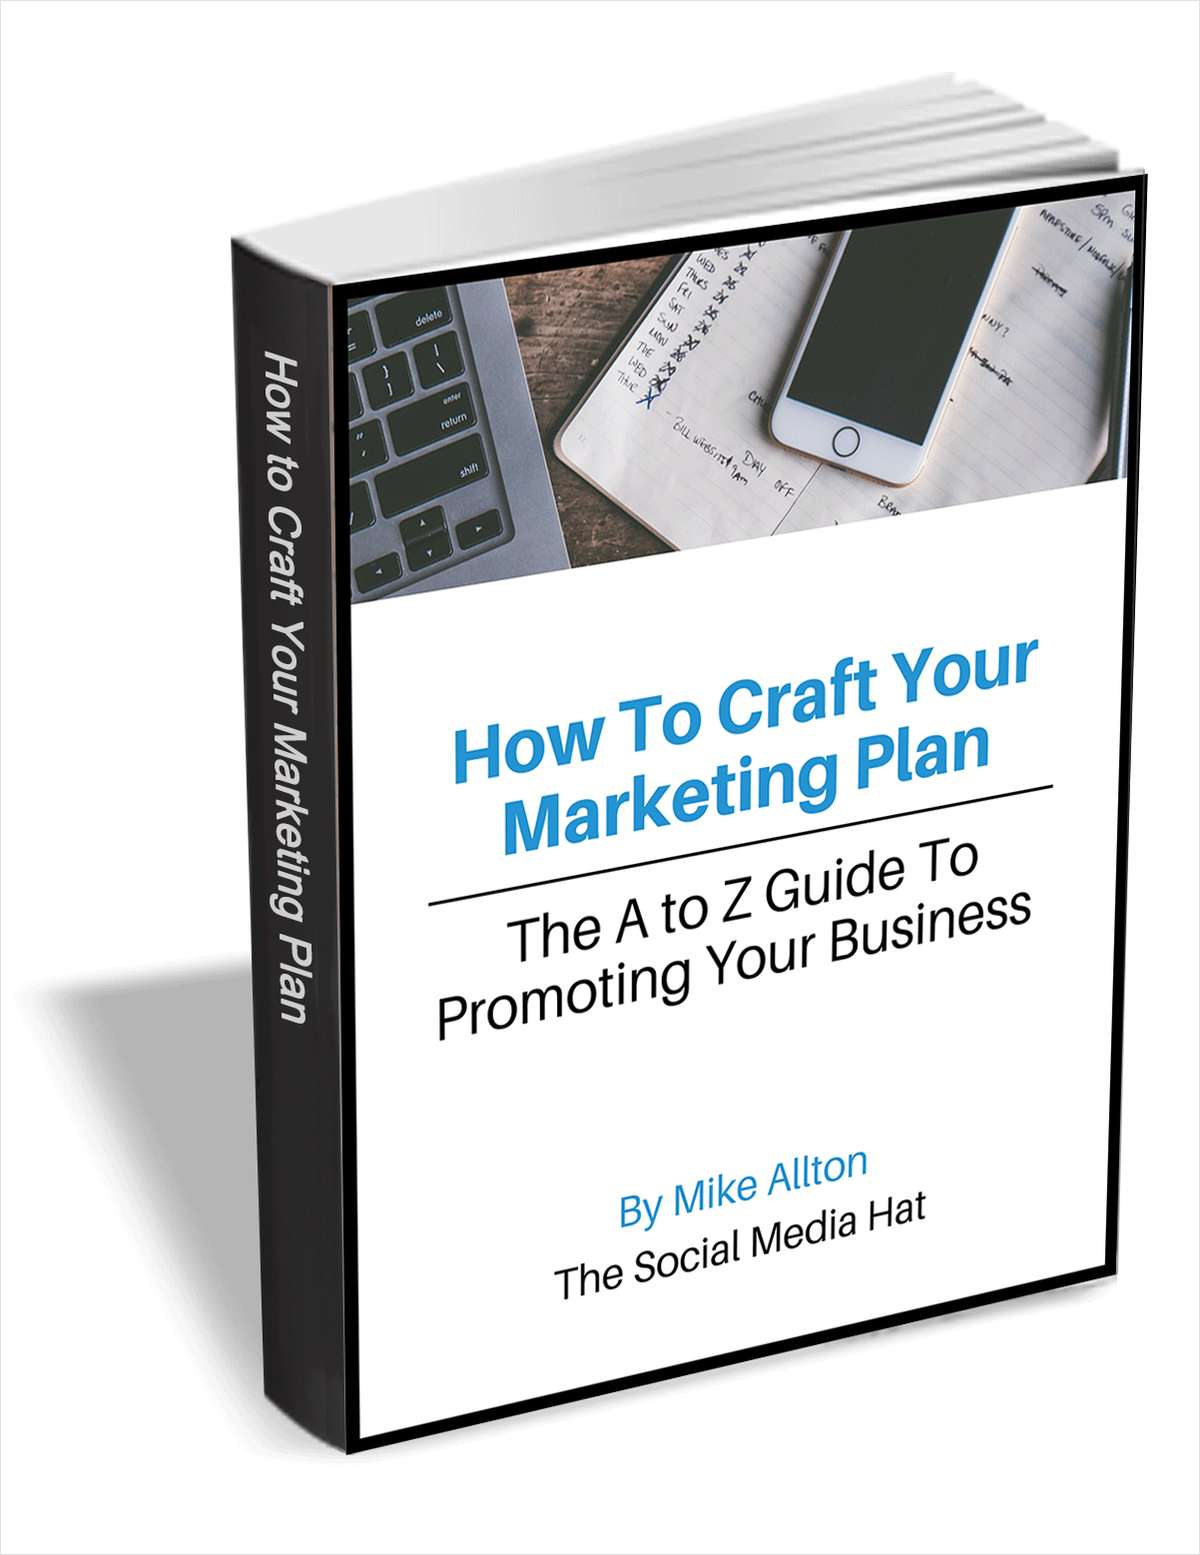 How To Craft Your Marketing Plan - The A to Z Guide To Promoting Your Business